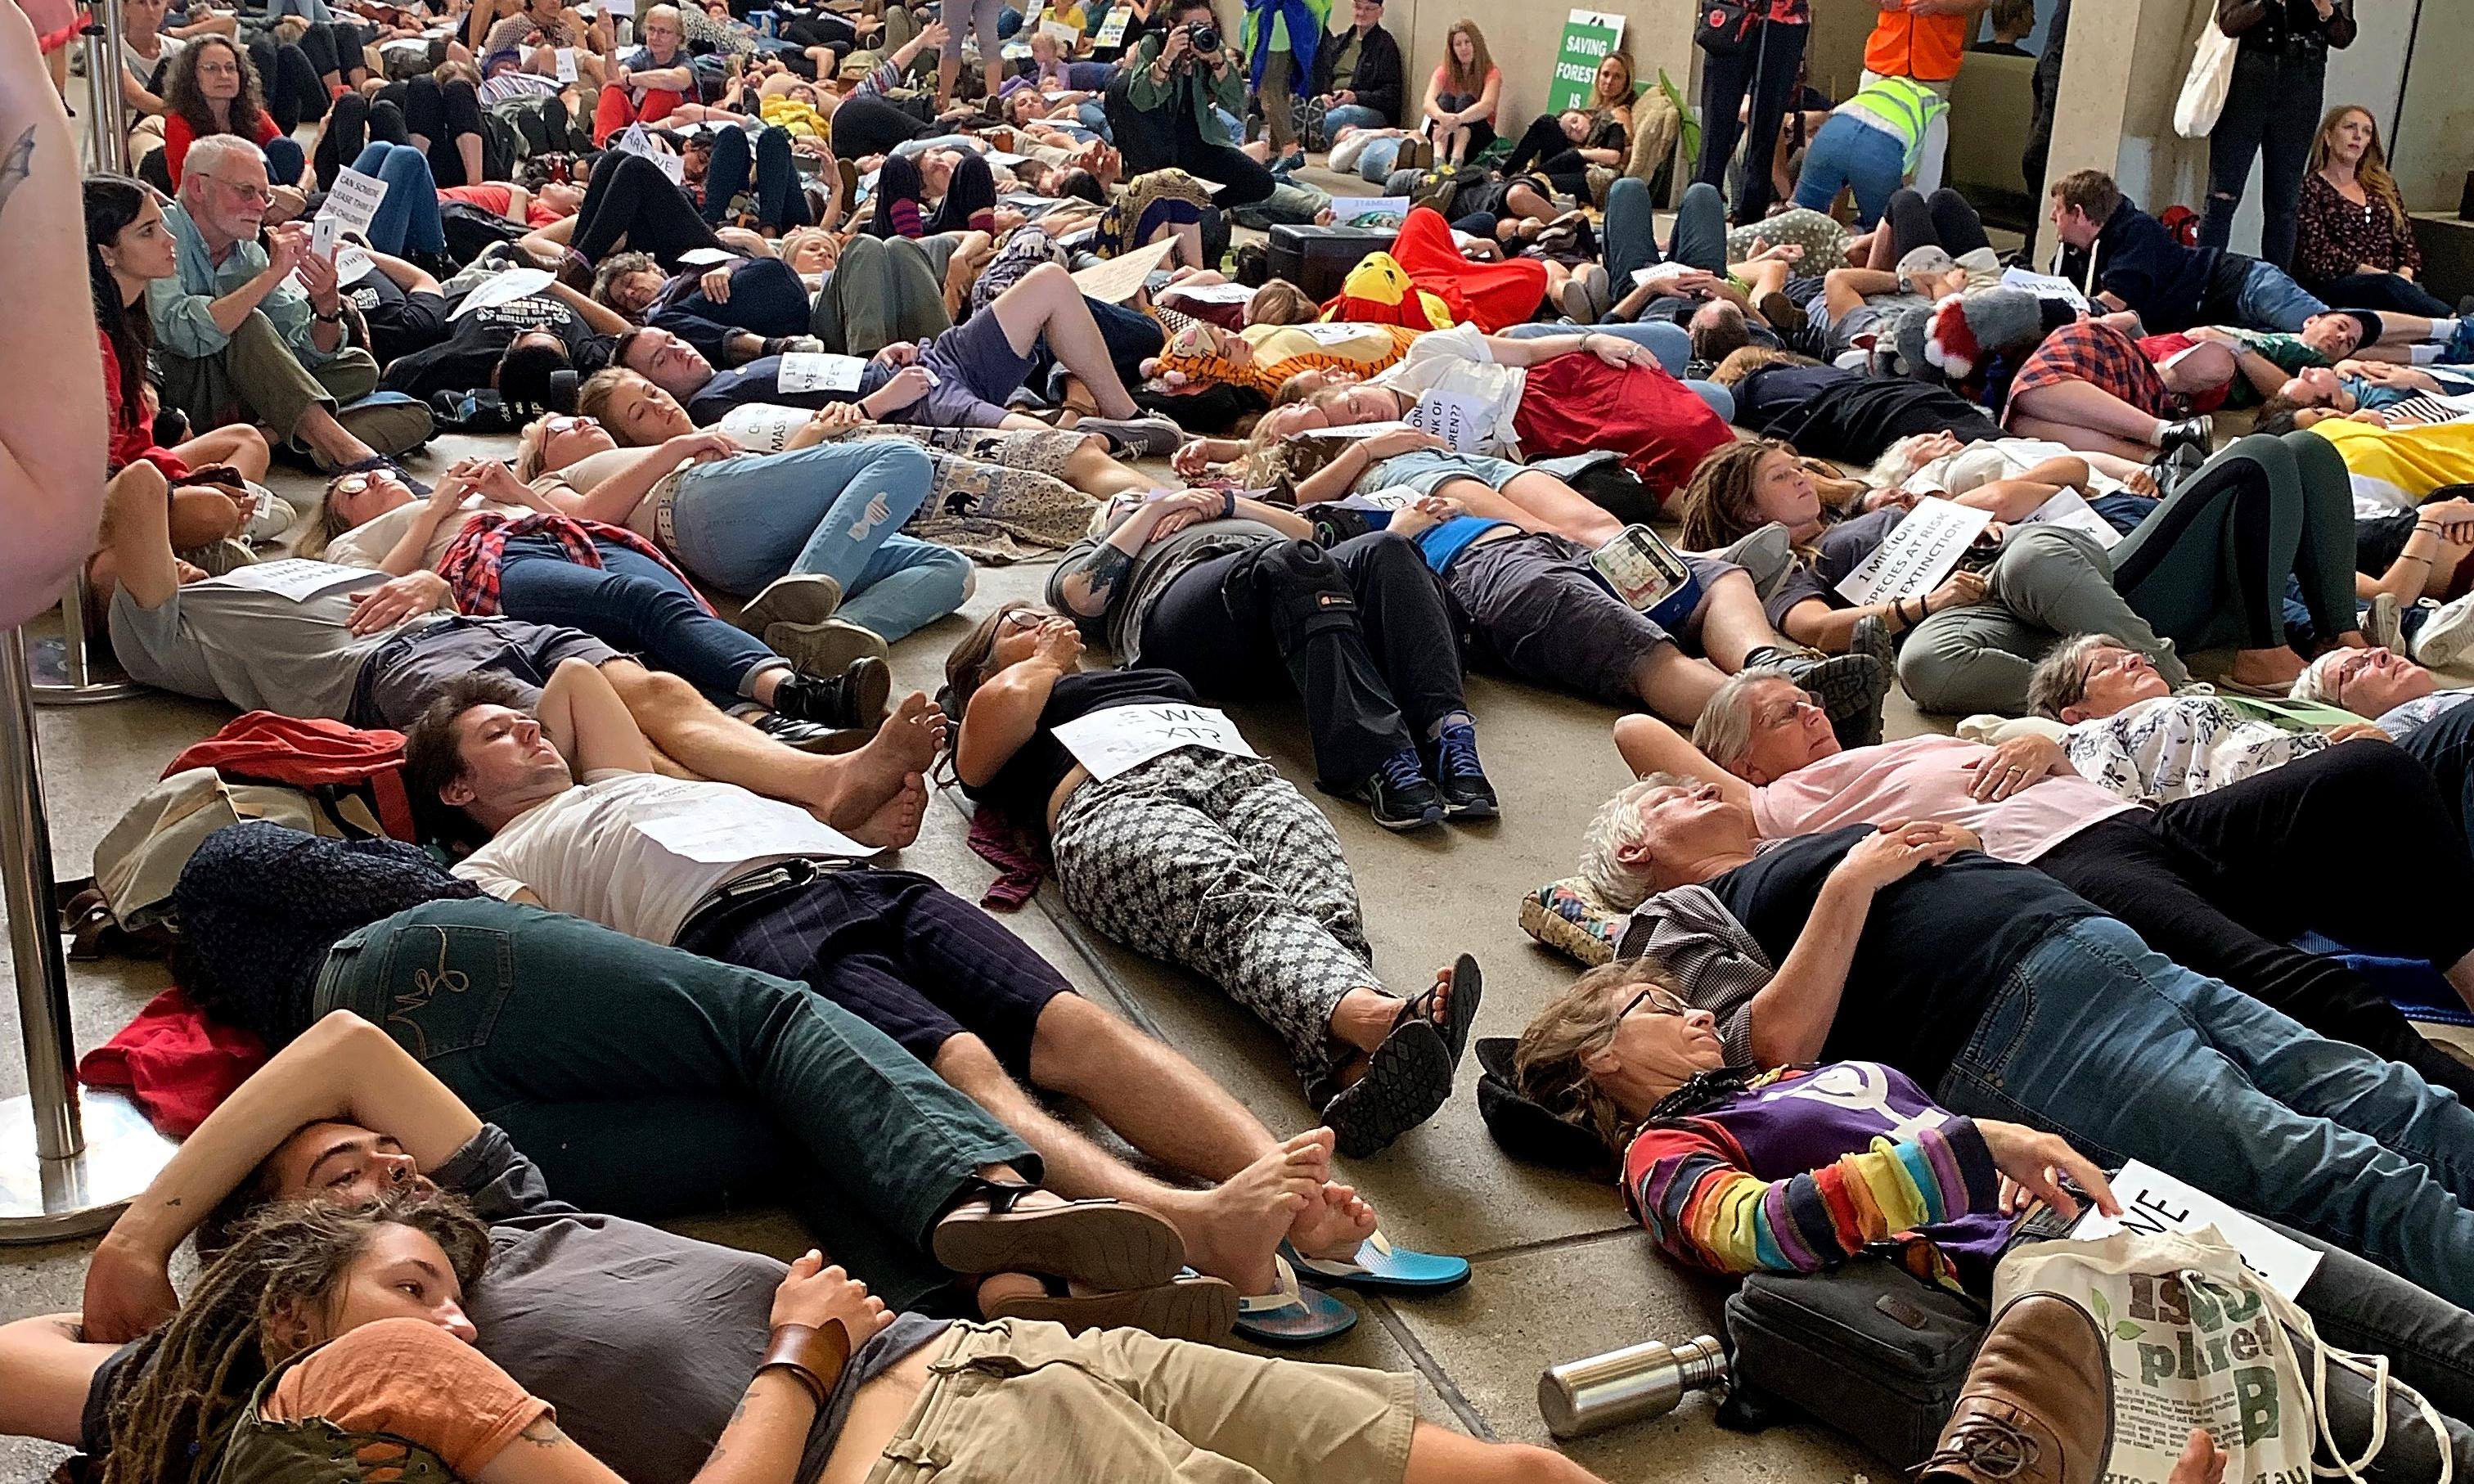 Climate protesters stage 'die-in' at Queensland Museum's dinosaur exhibit